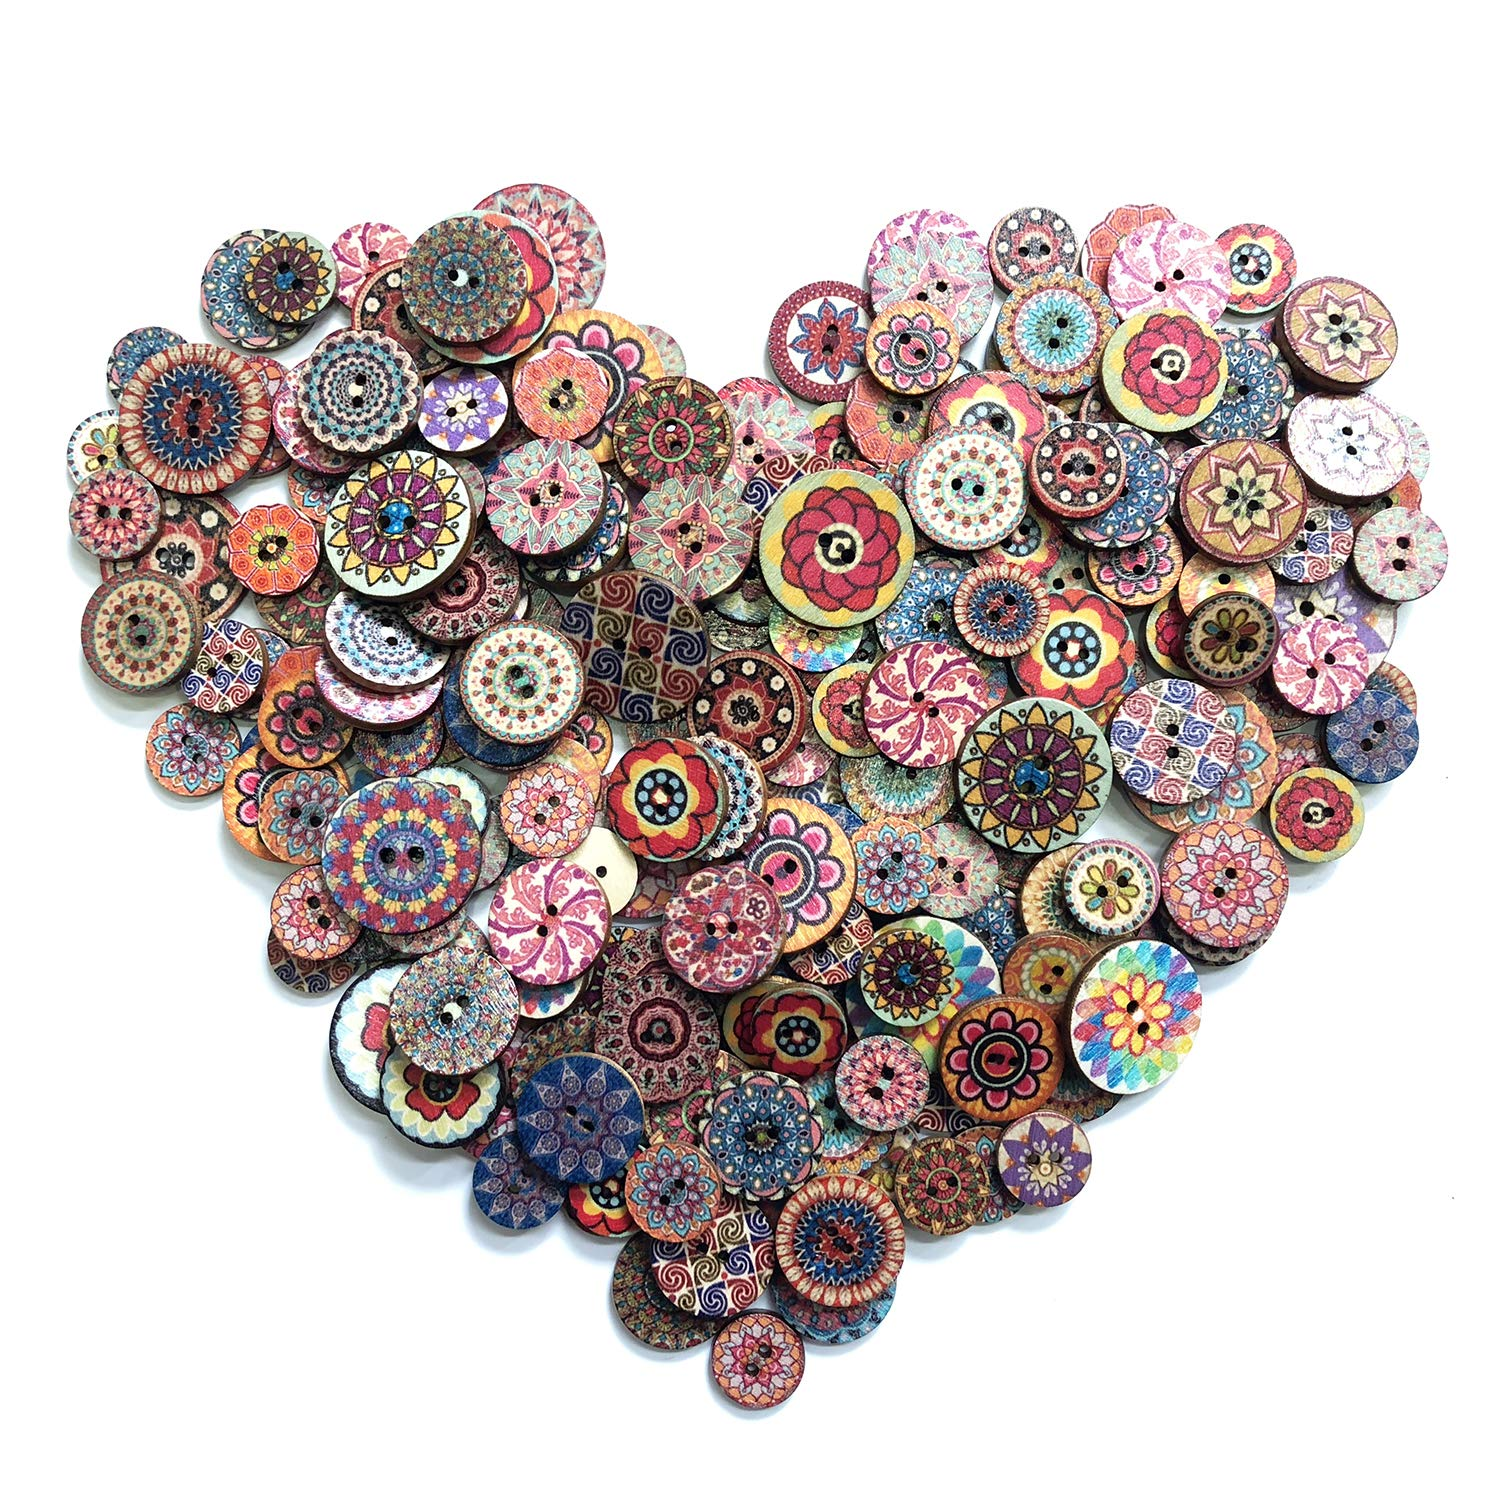 DYLLGL 500 Pieces Wood Buttons, 2 Holes Round Flower Buttons Vintage Buttons for DIY Sewing Craft Decorations